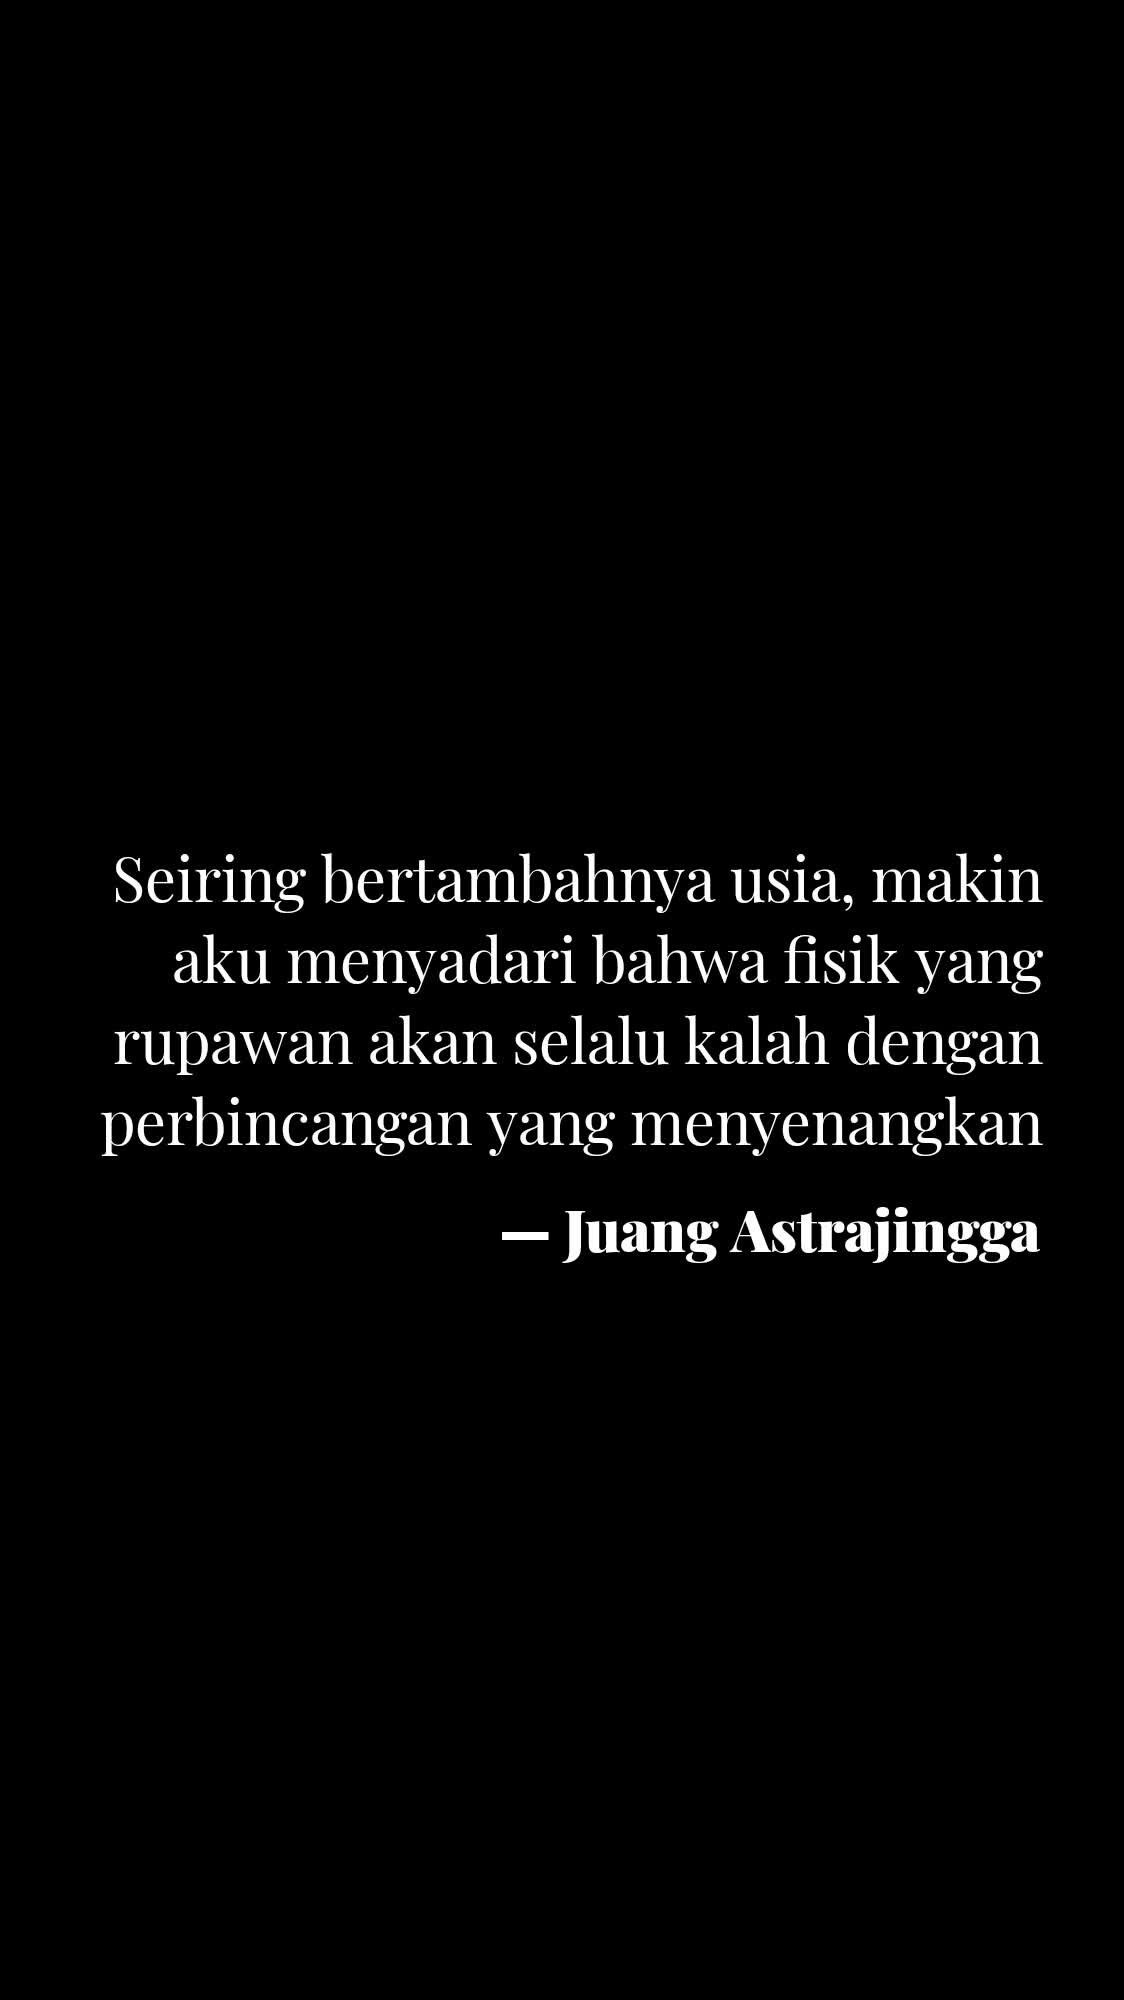 Pin By Fianita Ariesanti On Quote Pinterest Quotes Quotes